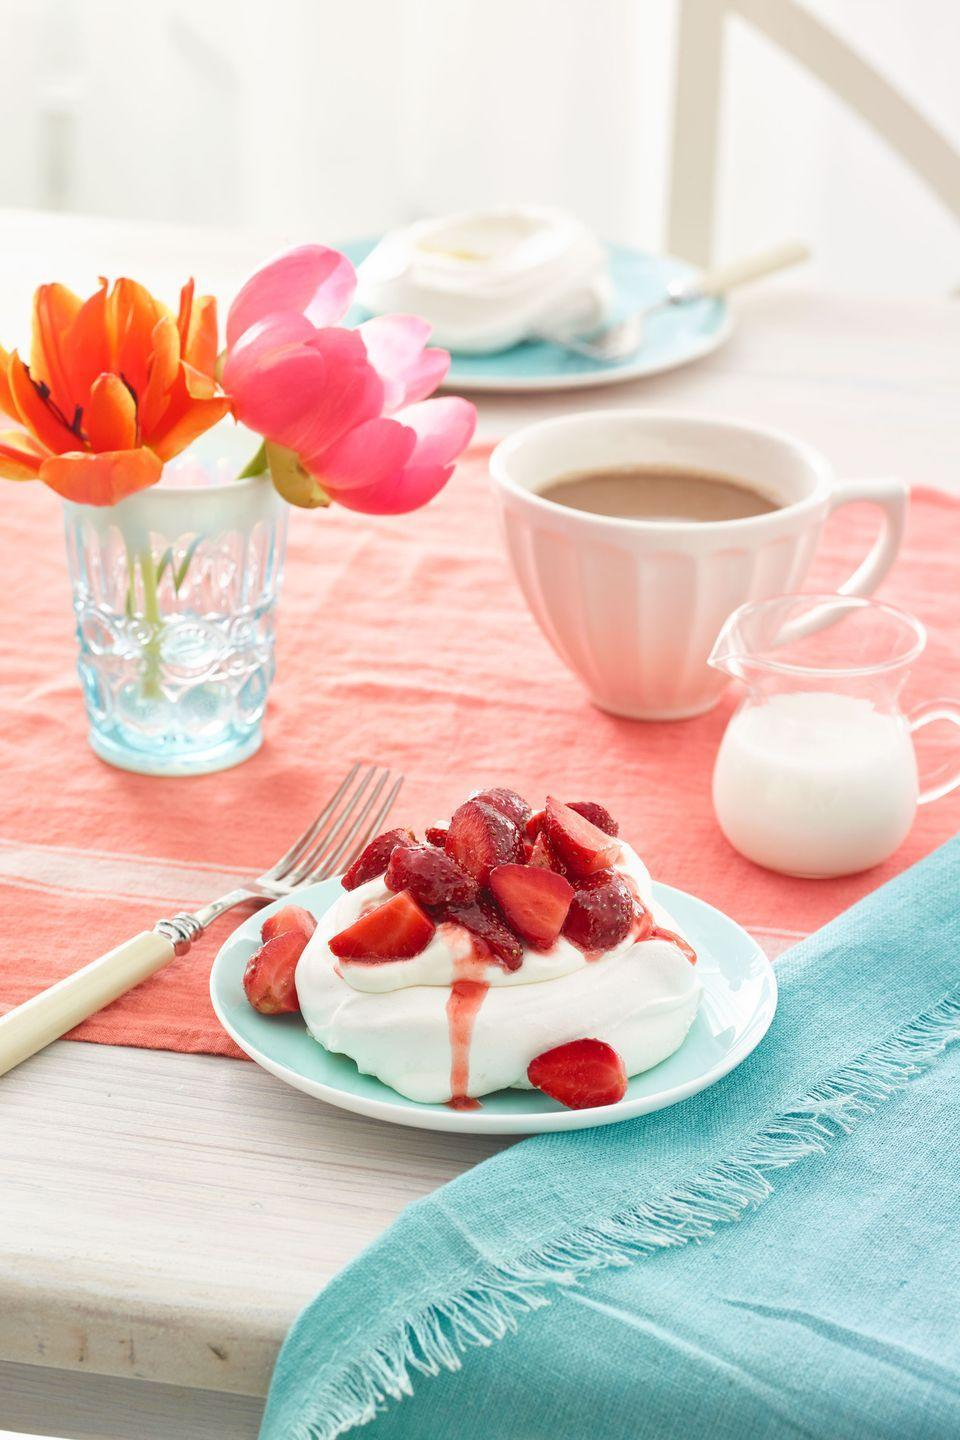 """<p>These elegant meringue swirls, topped with fresh strawberries, are almost too pretty to eat.</p><p><a href=""""https://www.womansday.com/food-recipes/food-drinks/recipes/a54431/pavlovas-with-strawberries-and-cream-recipe/"""" rel=""""nofollow noopener"""" target=""""_blank"""" data-ylk=""""slk:Get the recipe for Pavlovas with Strawberries and Cream."""" class=""""link rapid-noclick-resp""""><em>Get the recipe for Pavlovas with Strawberries and Cream.</em></a></p>"""